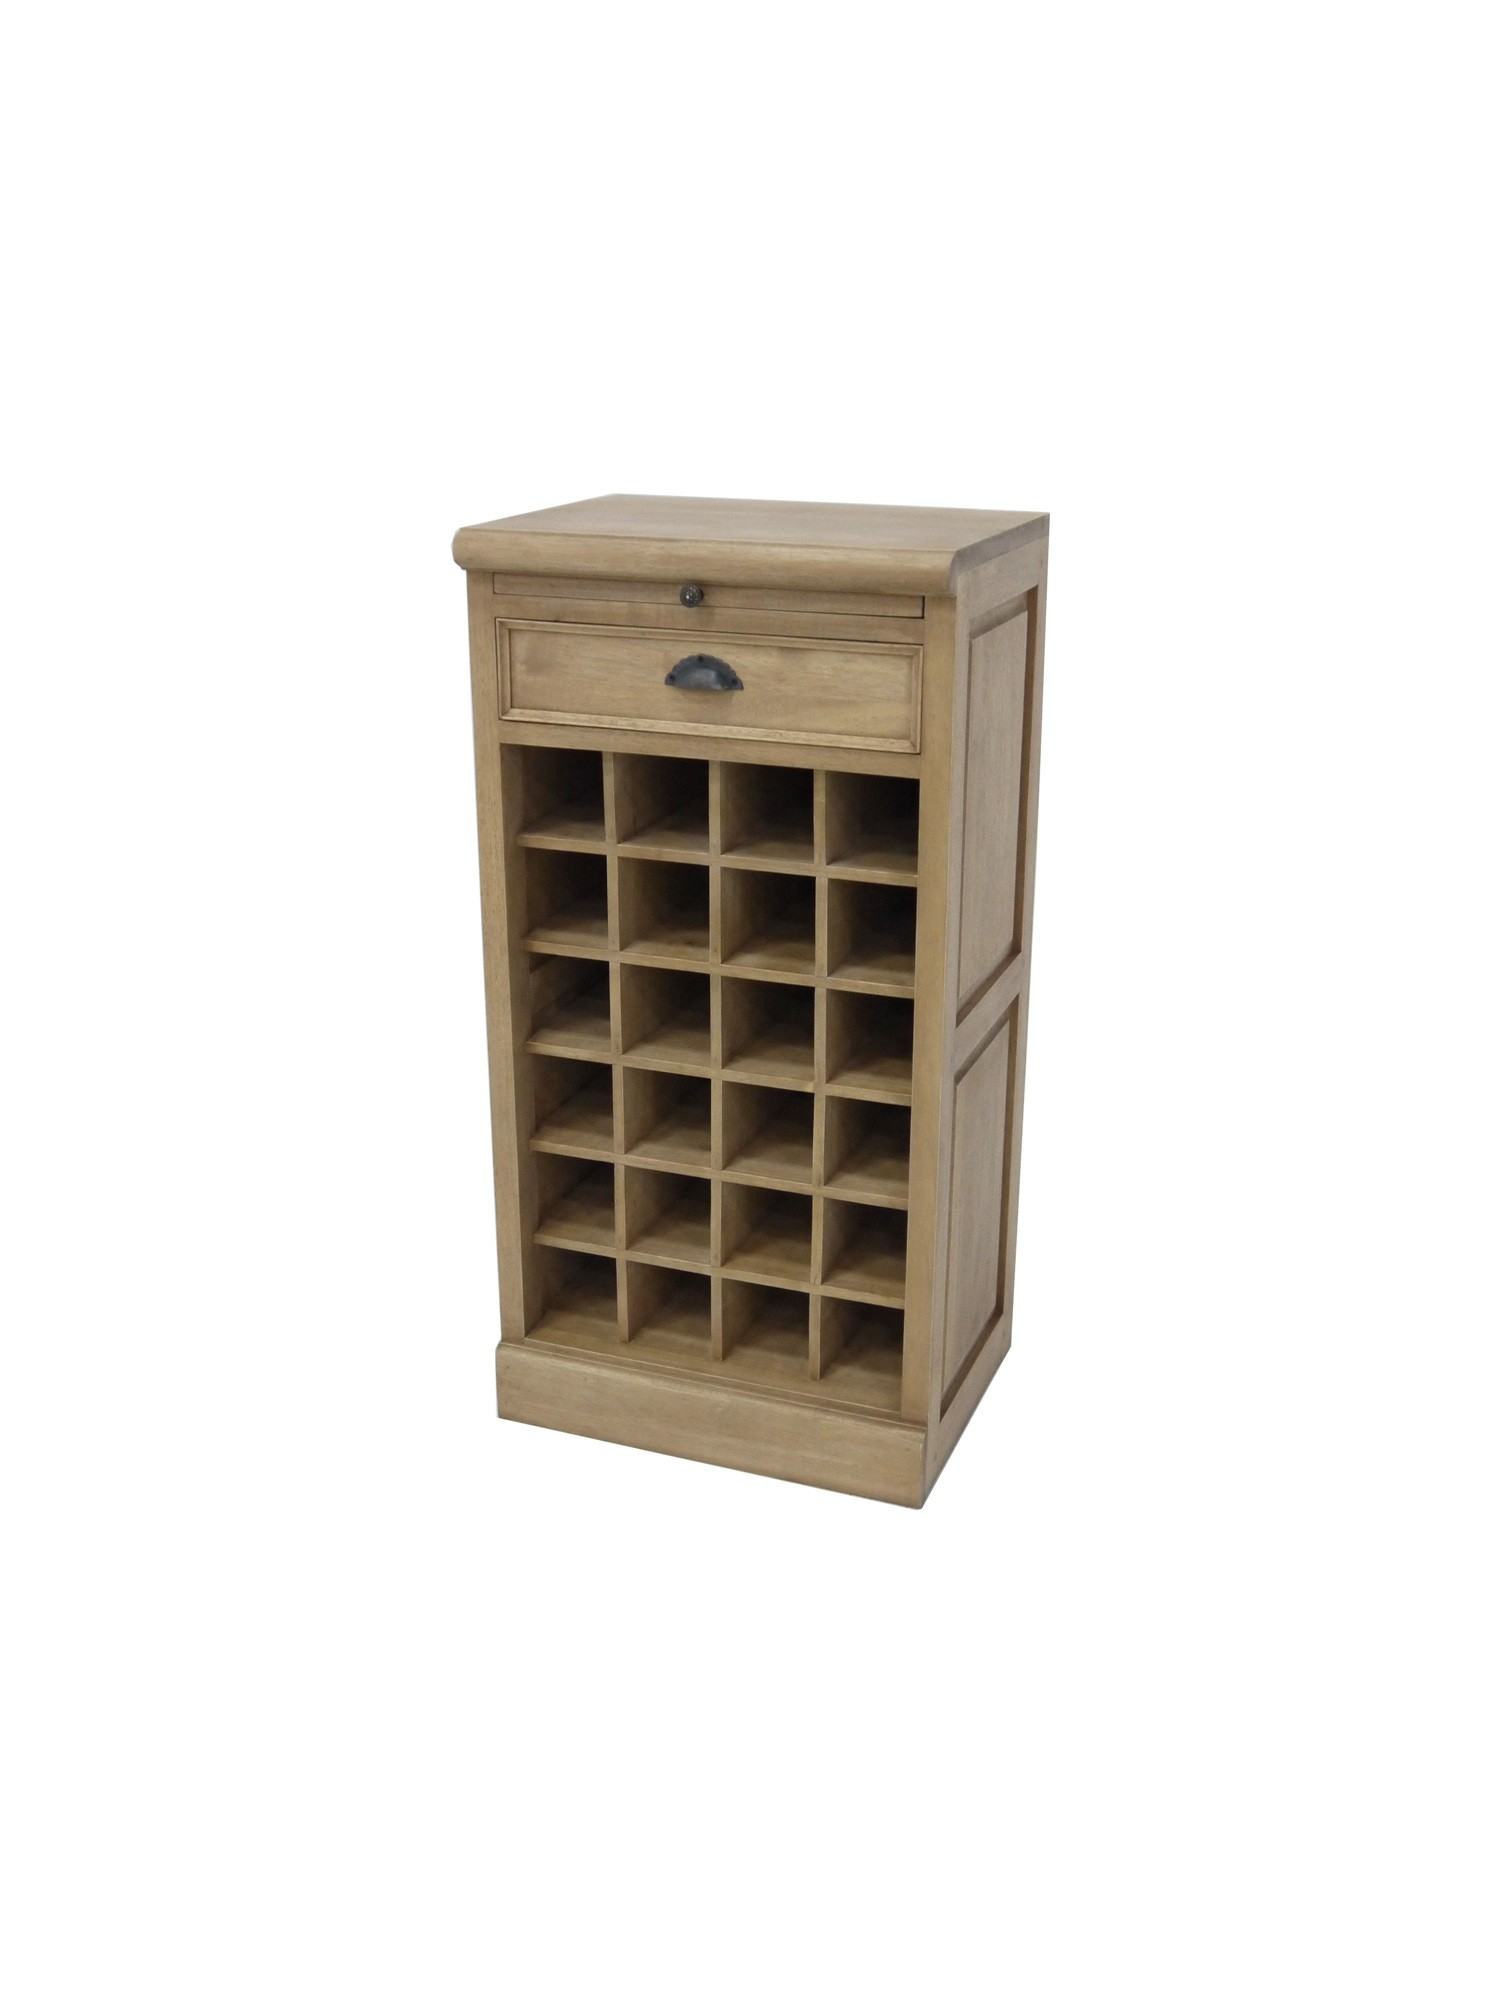 96cm Meuble Bar Range Bouteilles Tradittion H Vn8mn0w